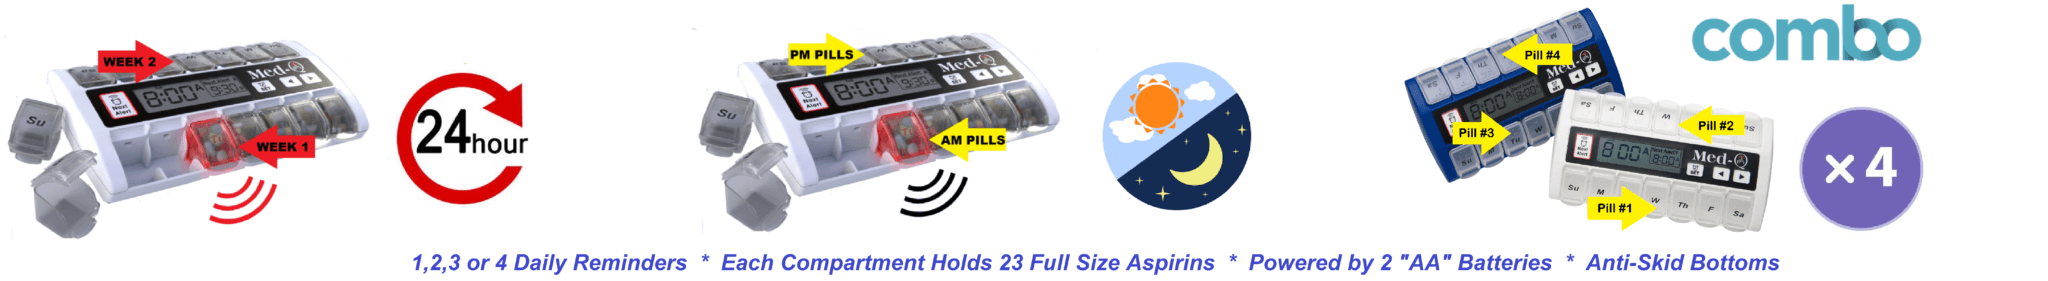 MED-Q smart pill box Reminder